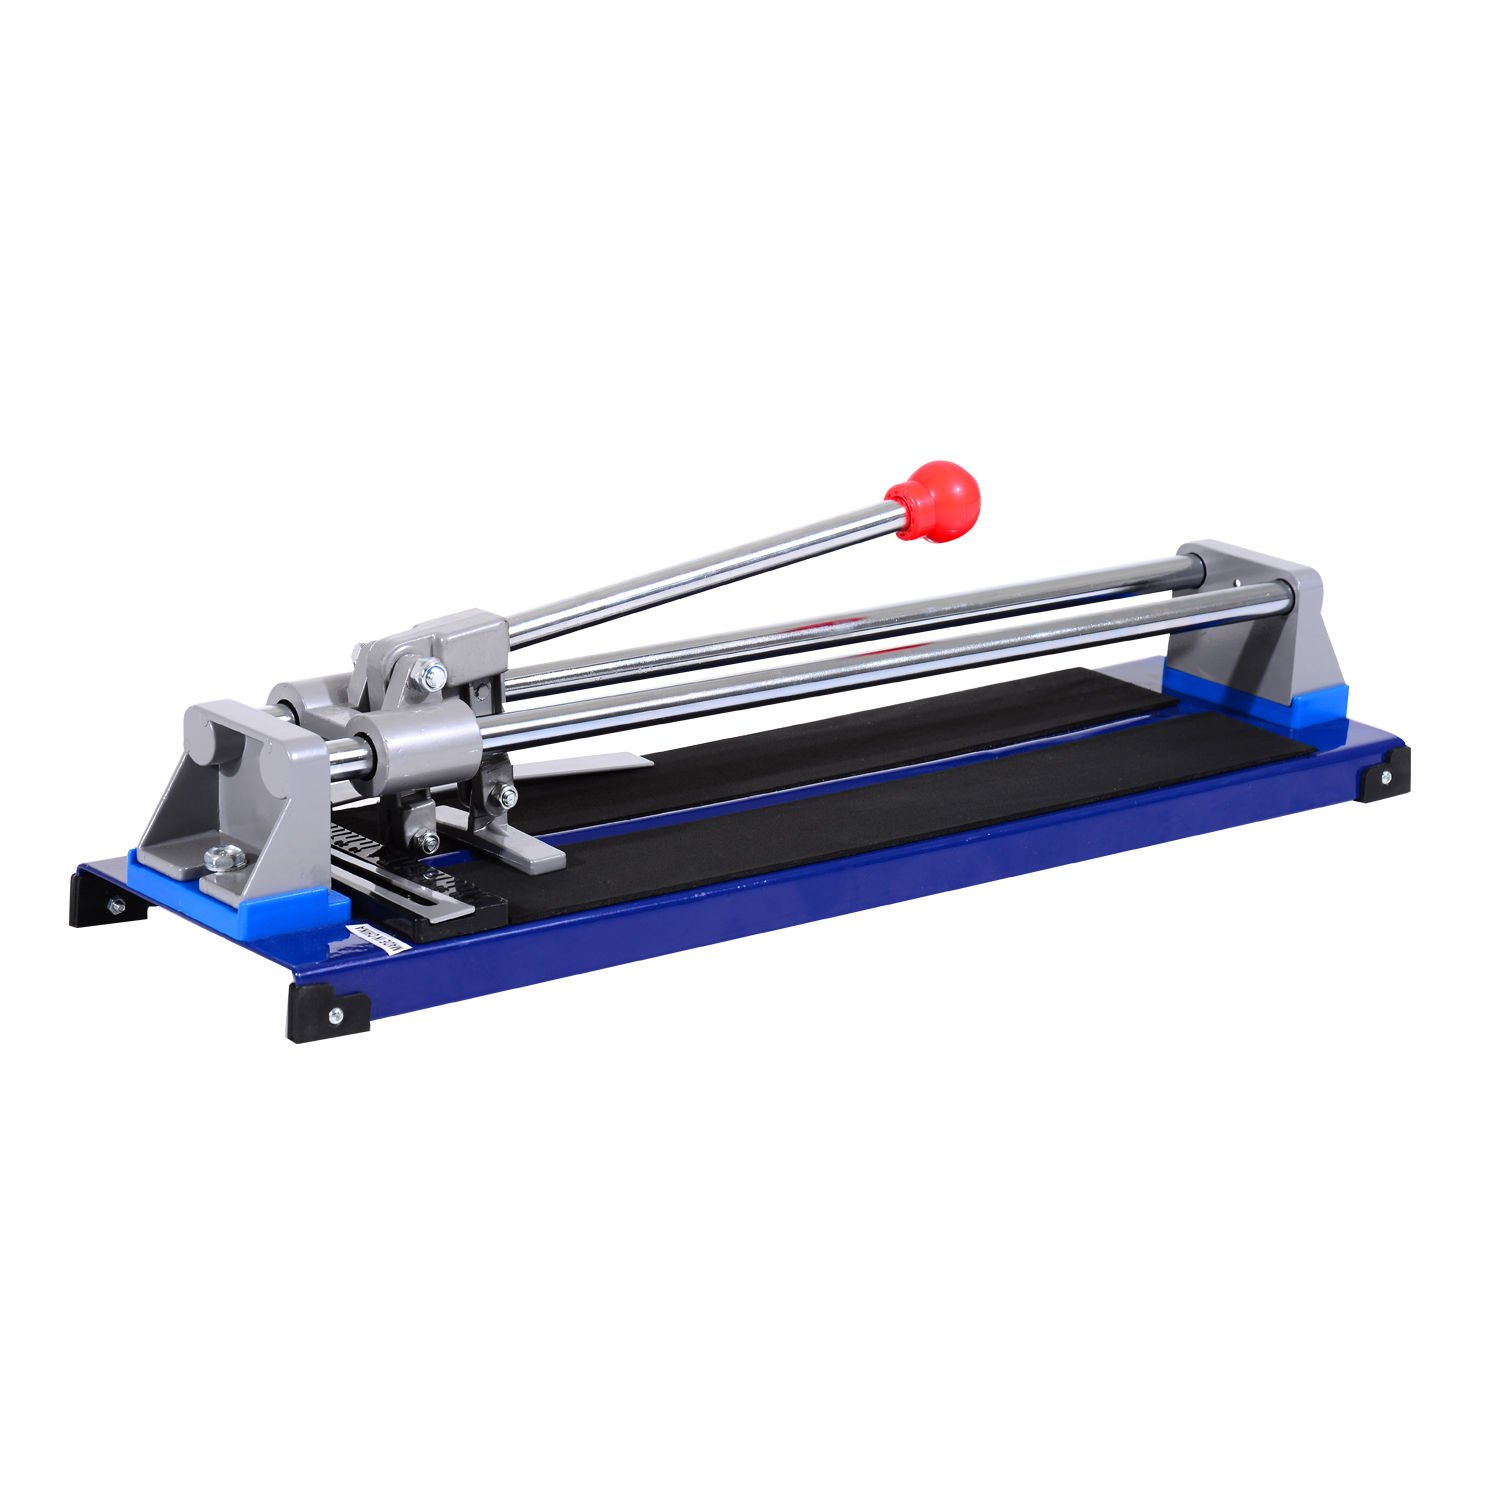 Generic NV_1008004595-DWX-US28 <8&45951> traight Anglendard Cut Cutter Standard 24'' Manual Heavy Cutting Length Duty Tile To Make Straight Angle 24'' Manual He